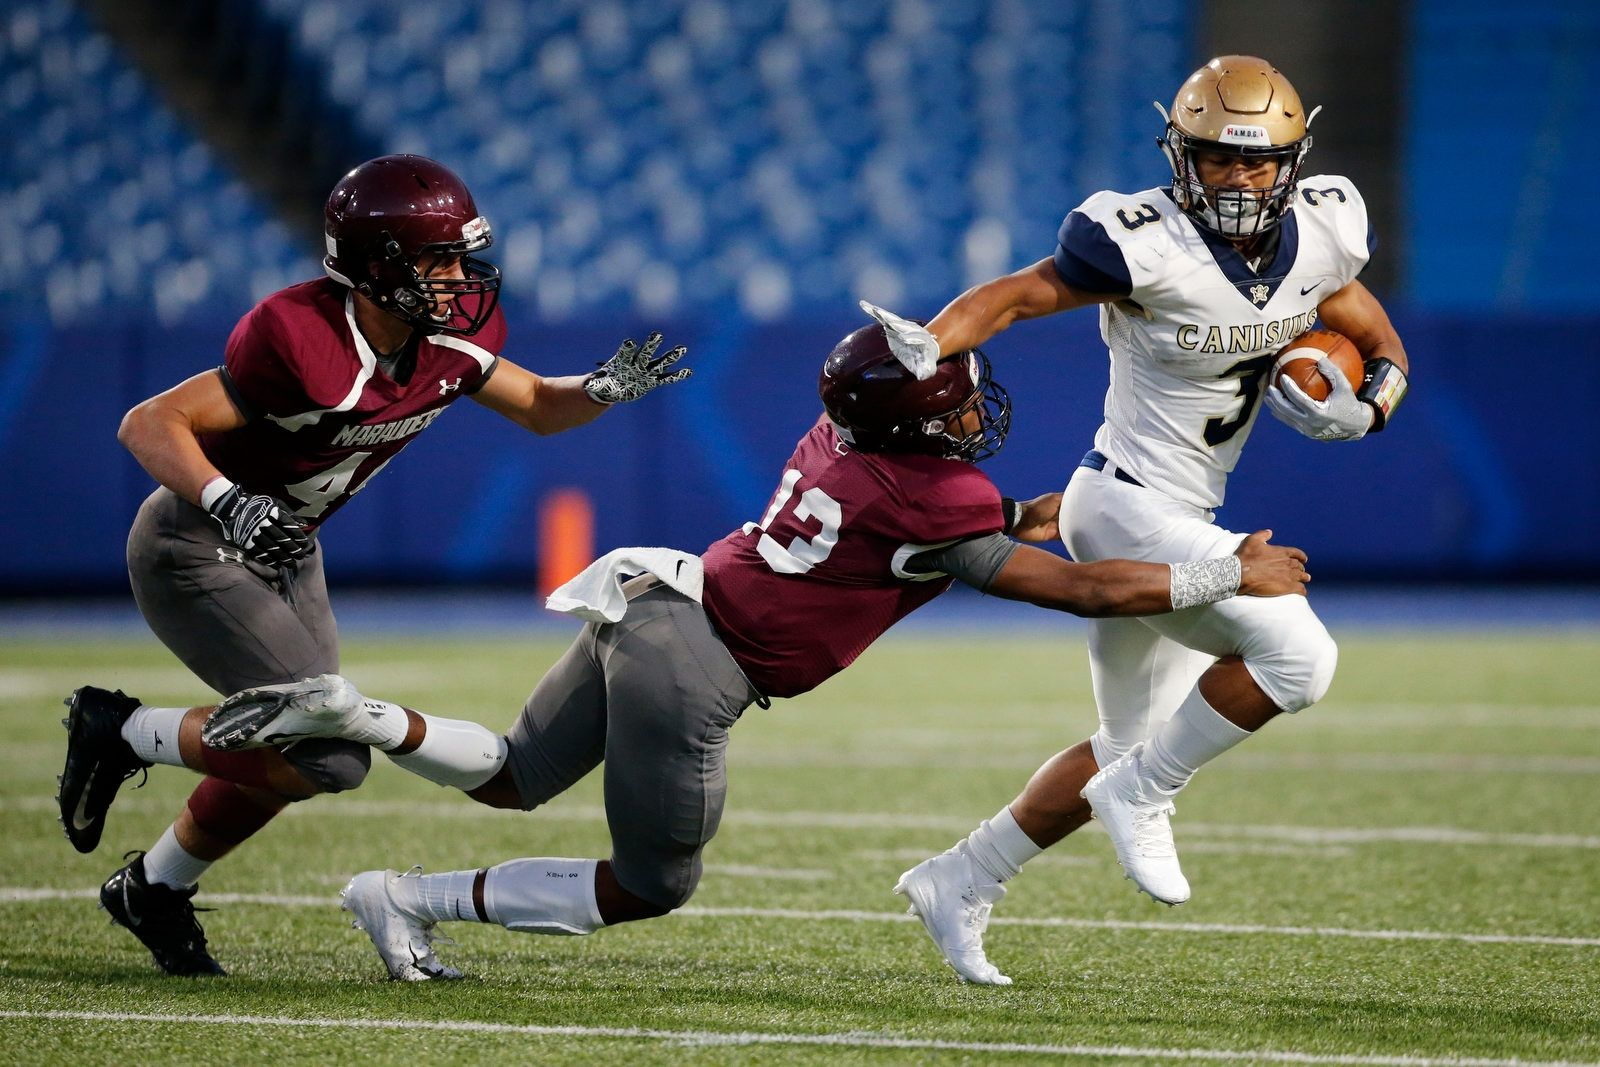 Canisius running back Joel Nicholas looks for extra yards as St. Joe's Micah Brown gets an hand on him during the first quarter.